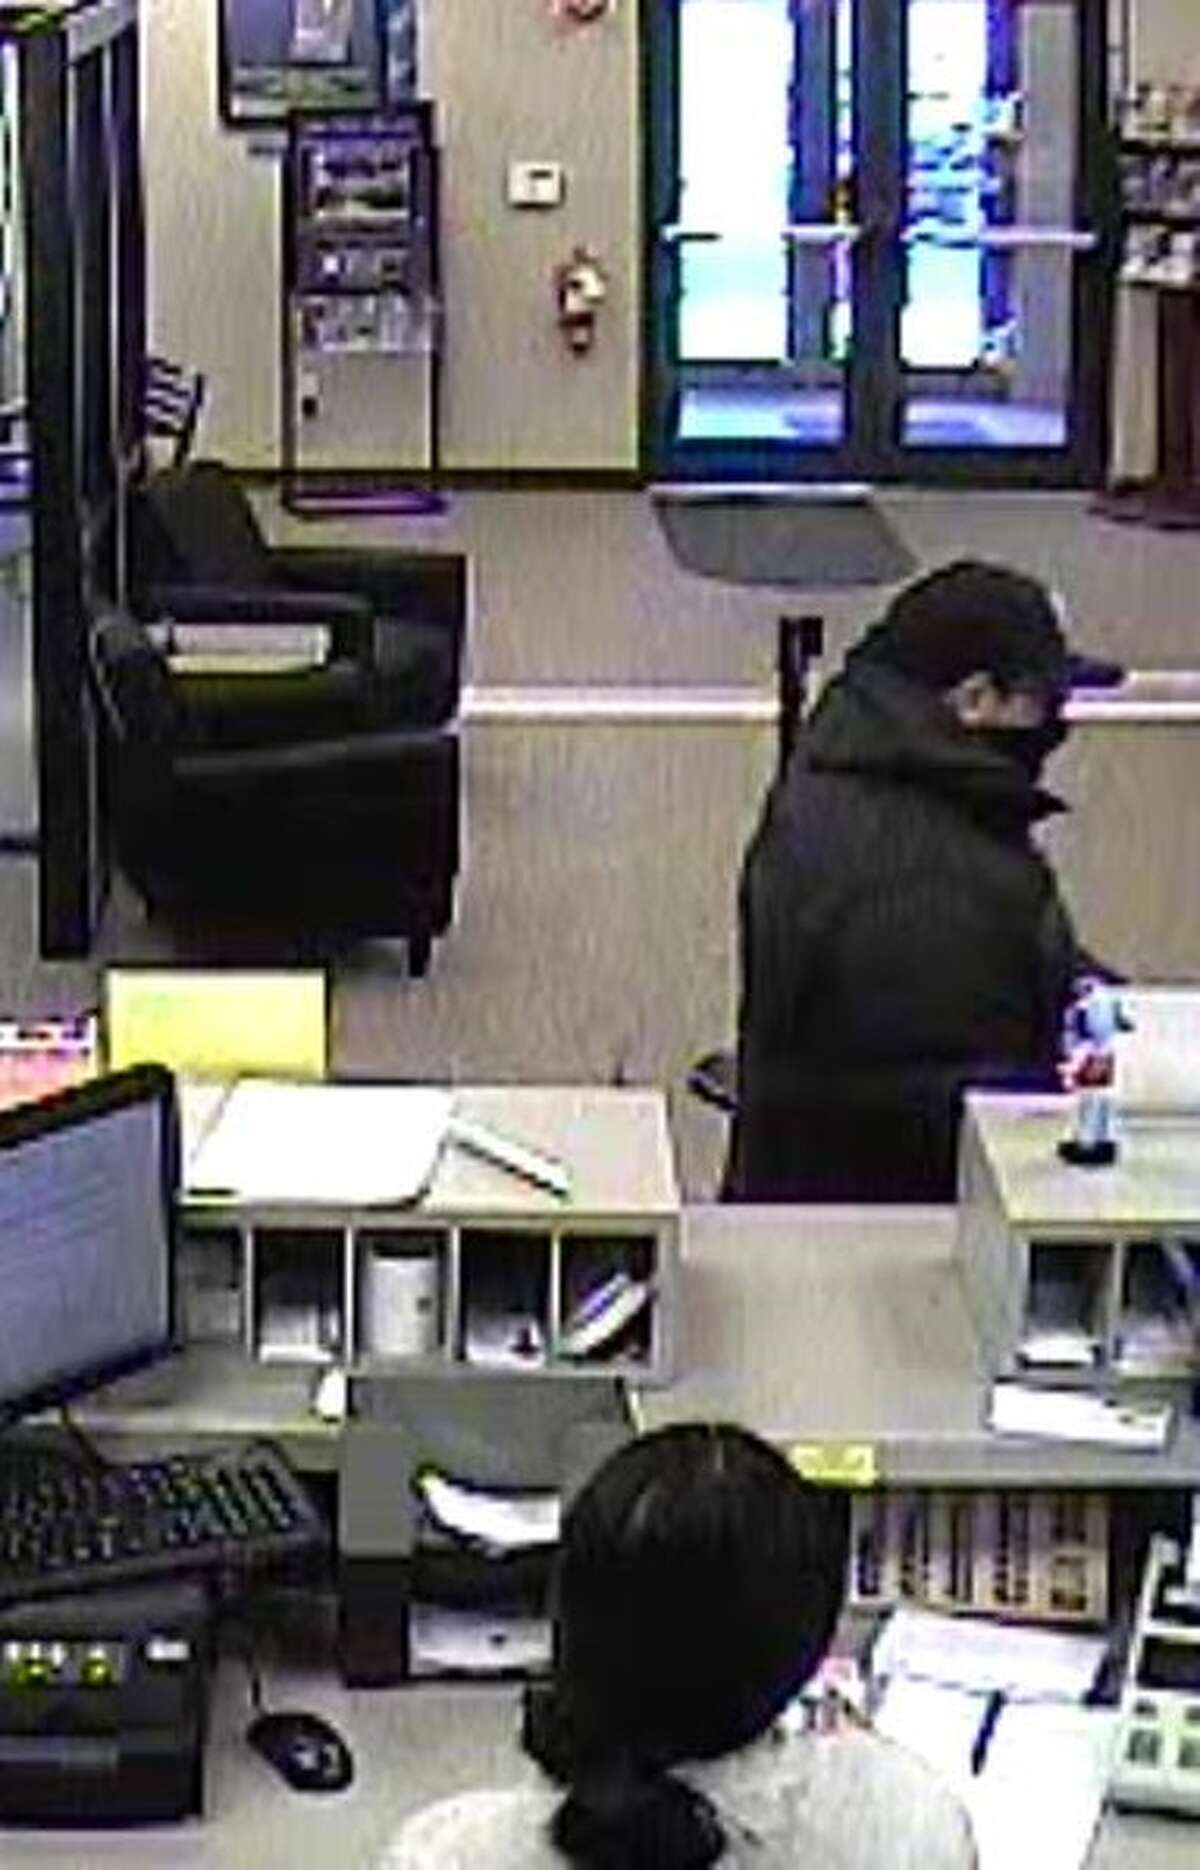 Police released this image in the investigation into a robbery of a TrustCo Bank in Rotterdam on Wednesday afternoon Jan. 6, 2016. (Rotterdam police photo)